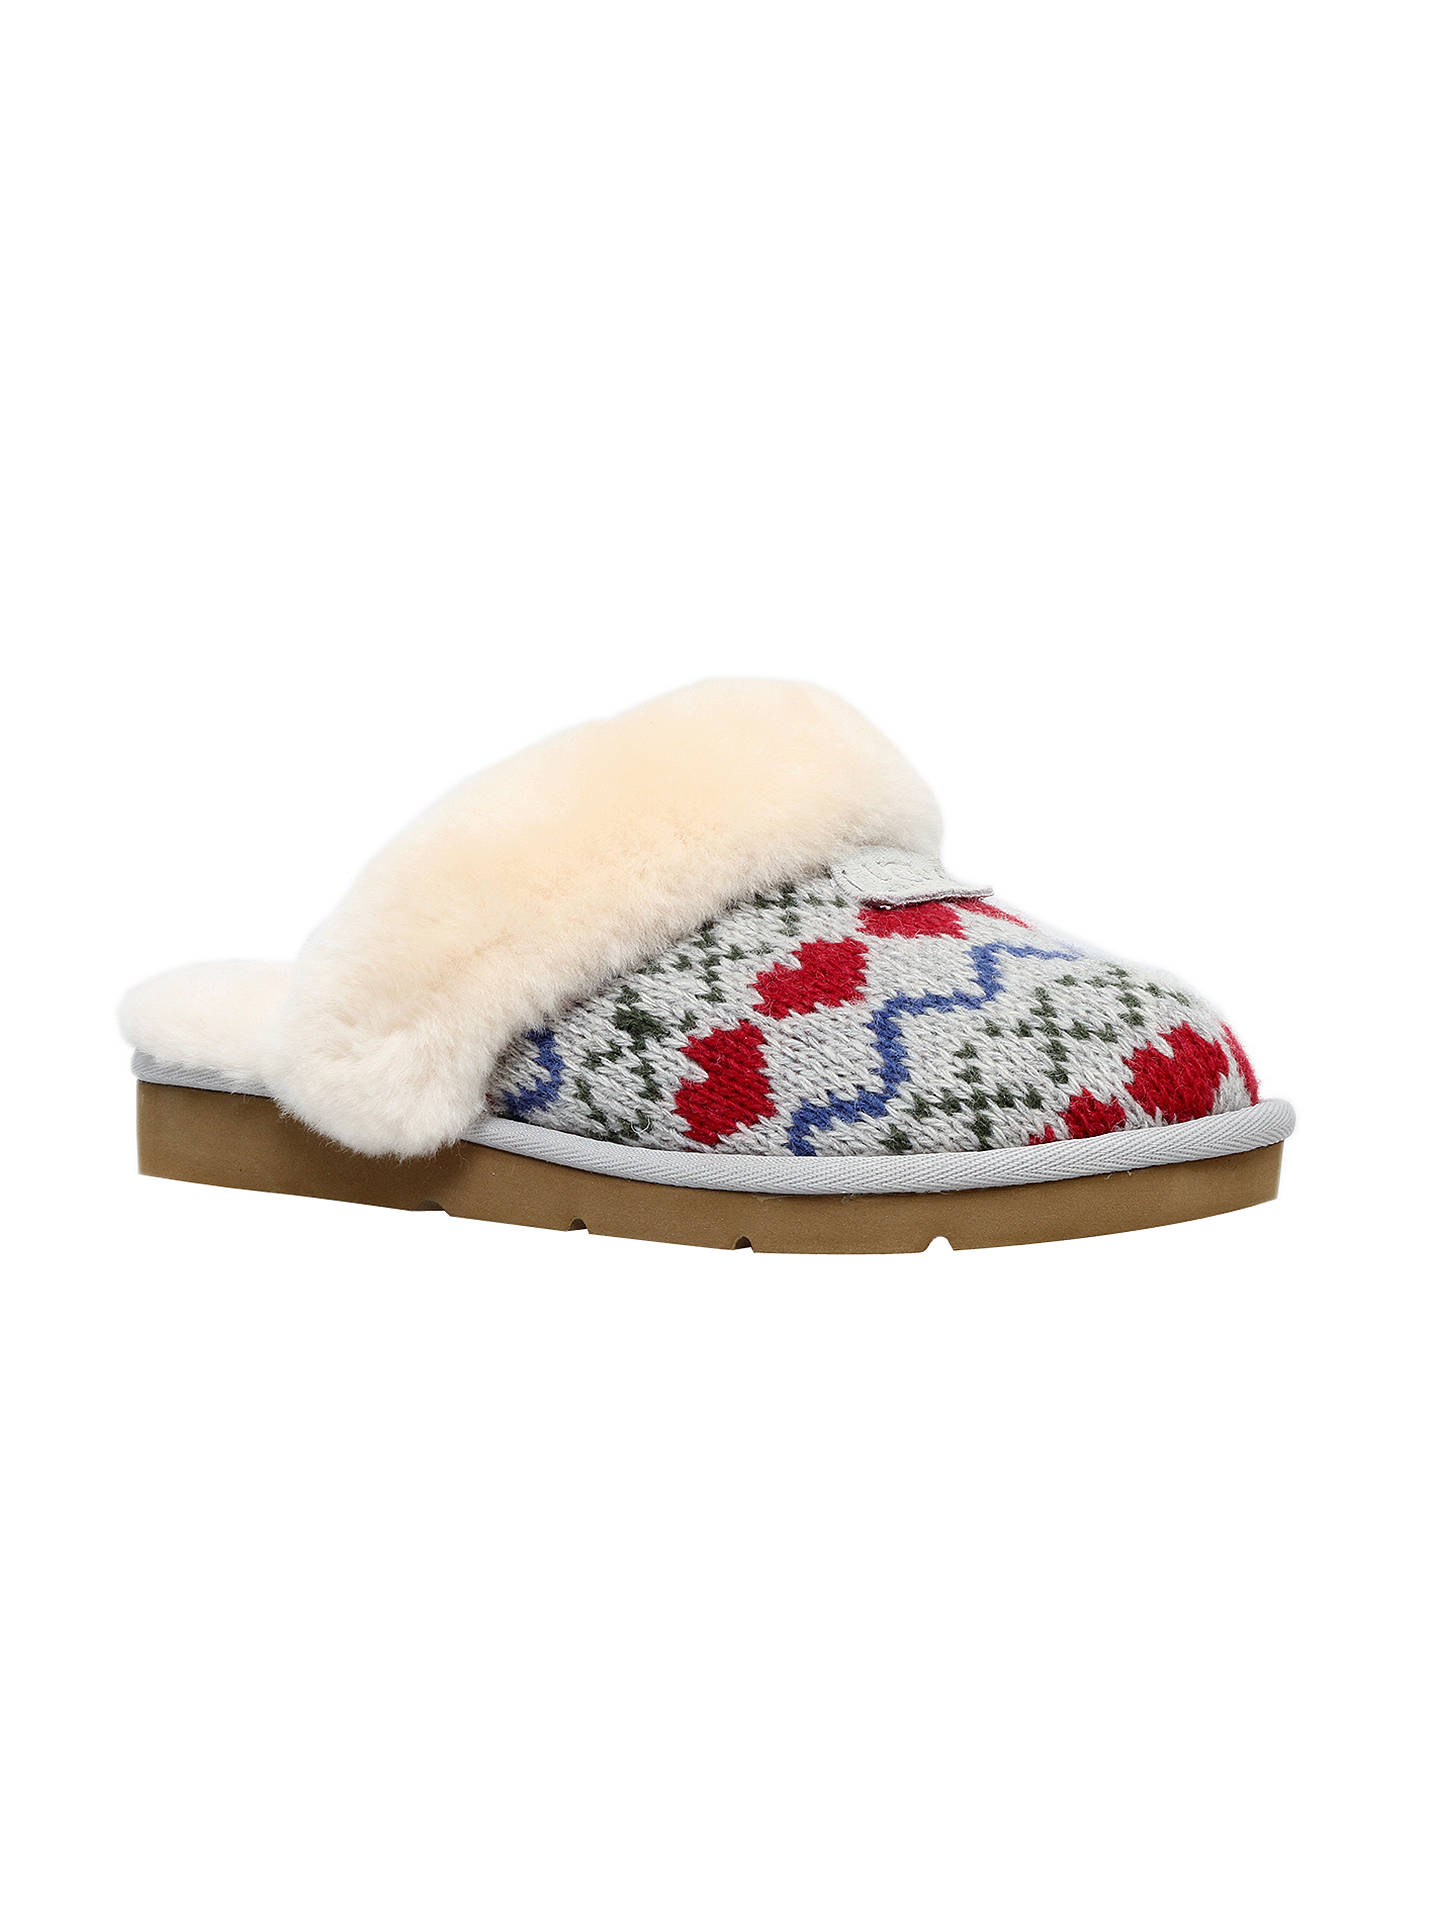 Ugg Cosy Knit Heart Printed Sheepskin Slippers Grey At John Lewis